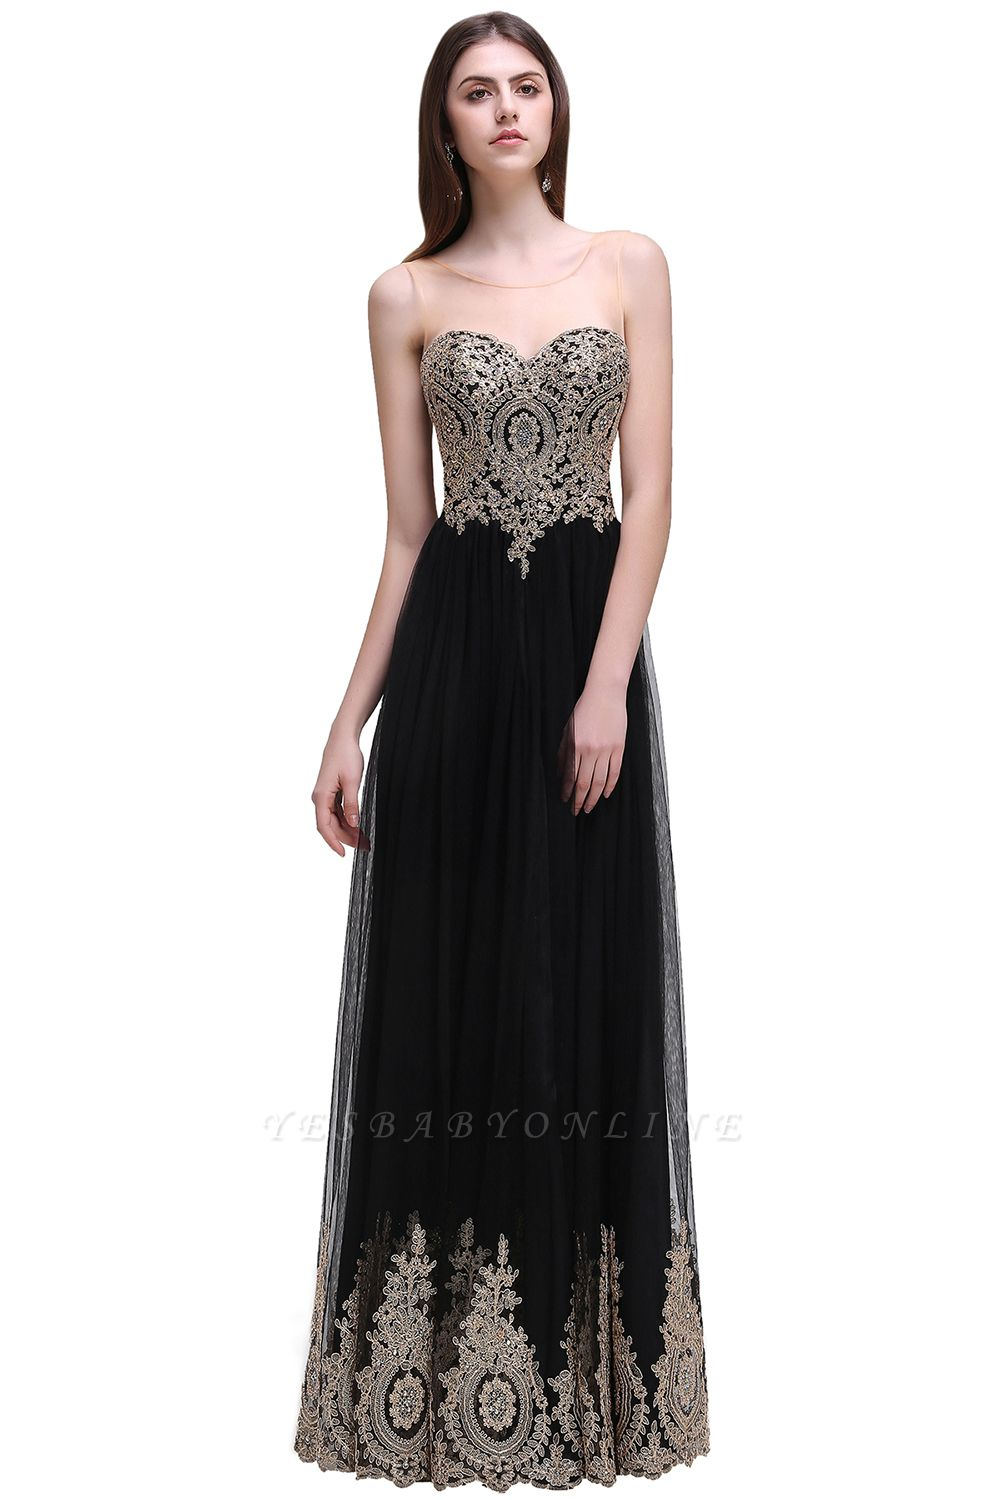 Black Tulle Long A-line Prom Dress with Appliques In Stock